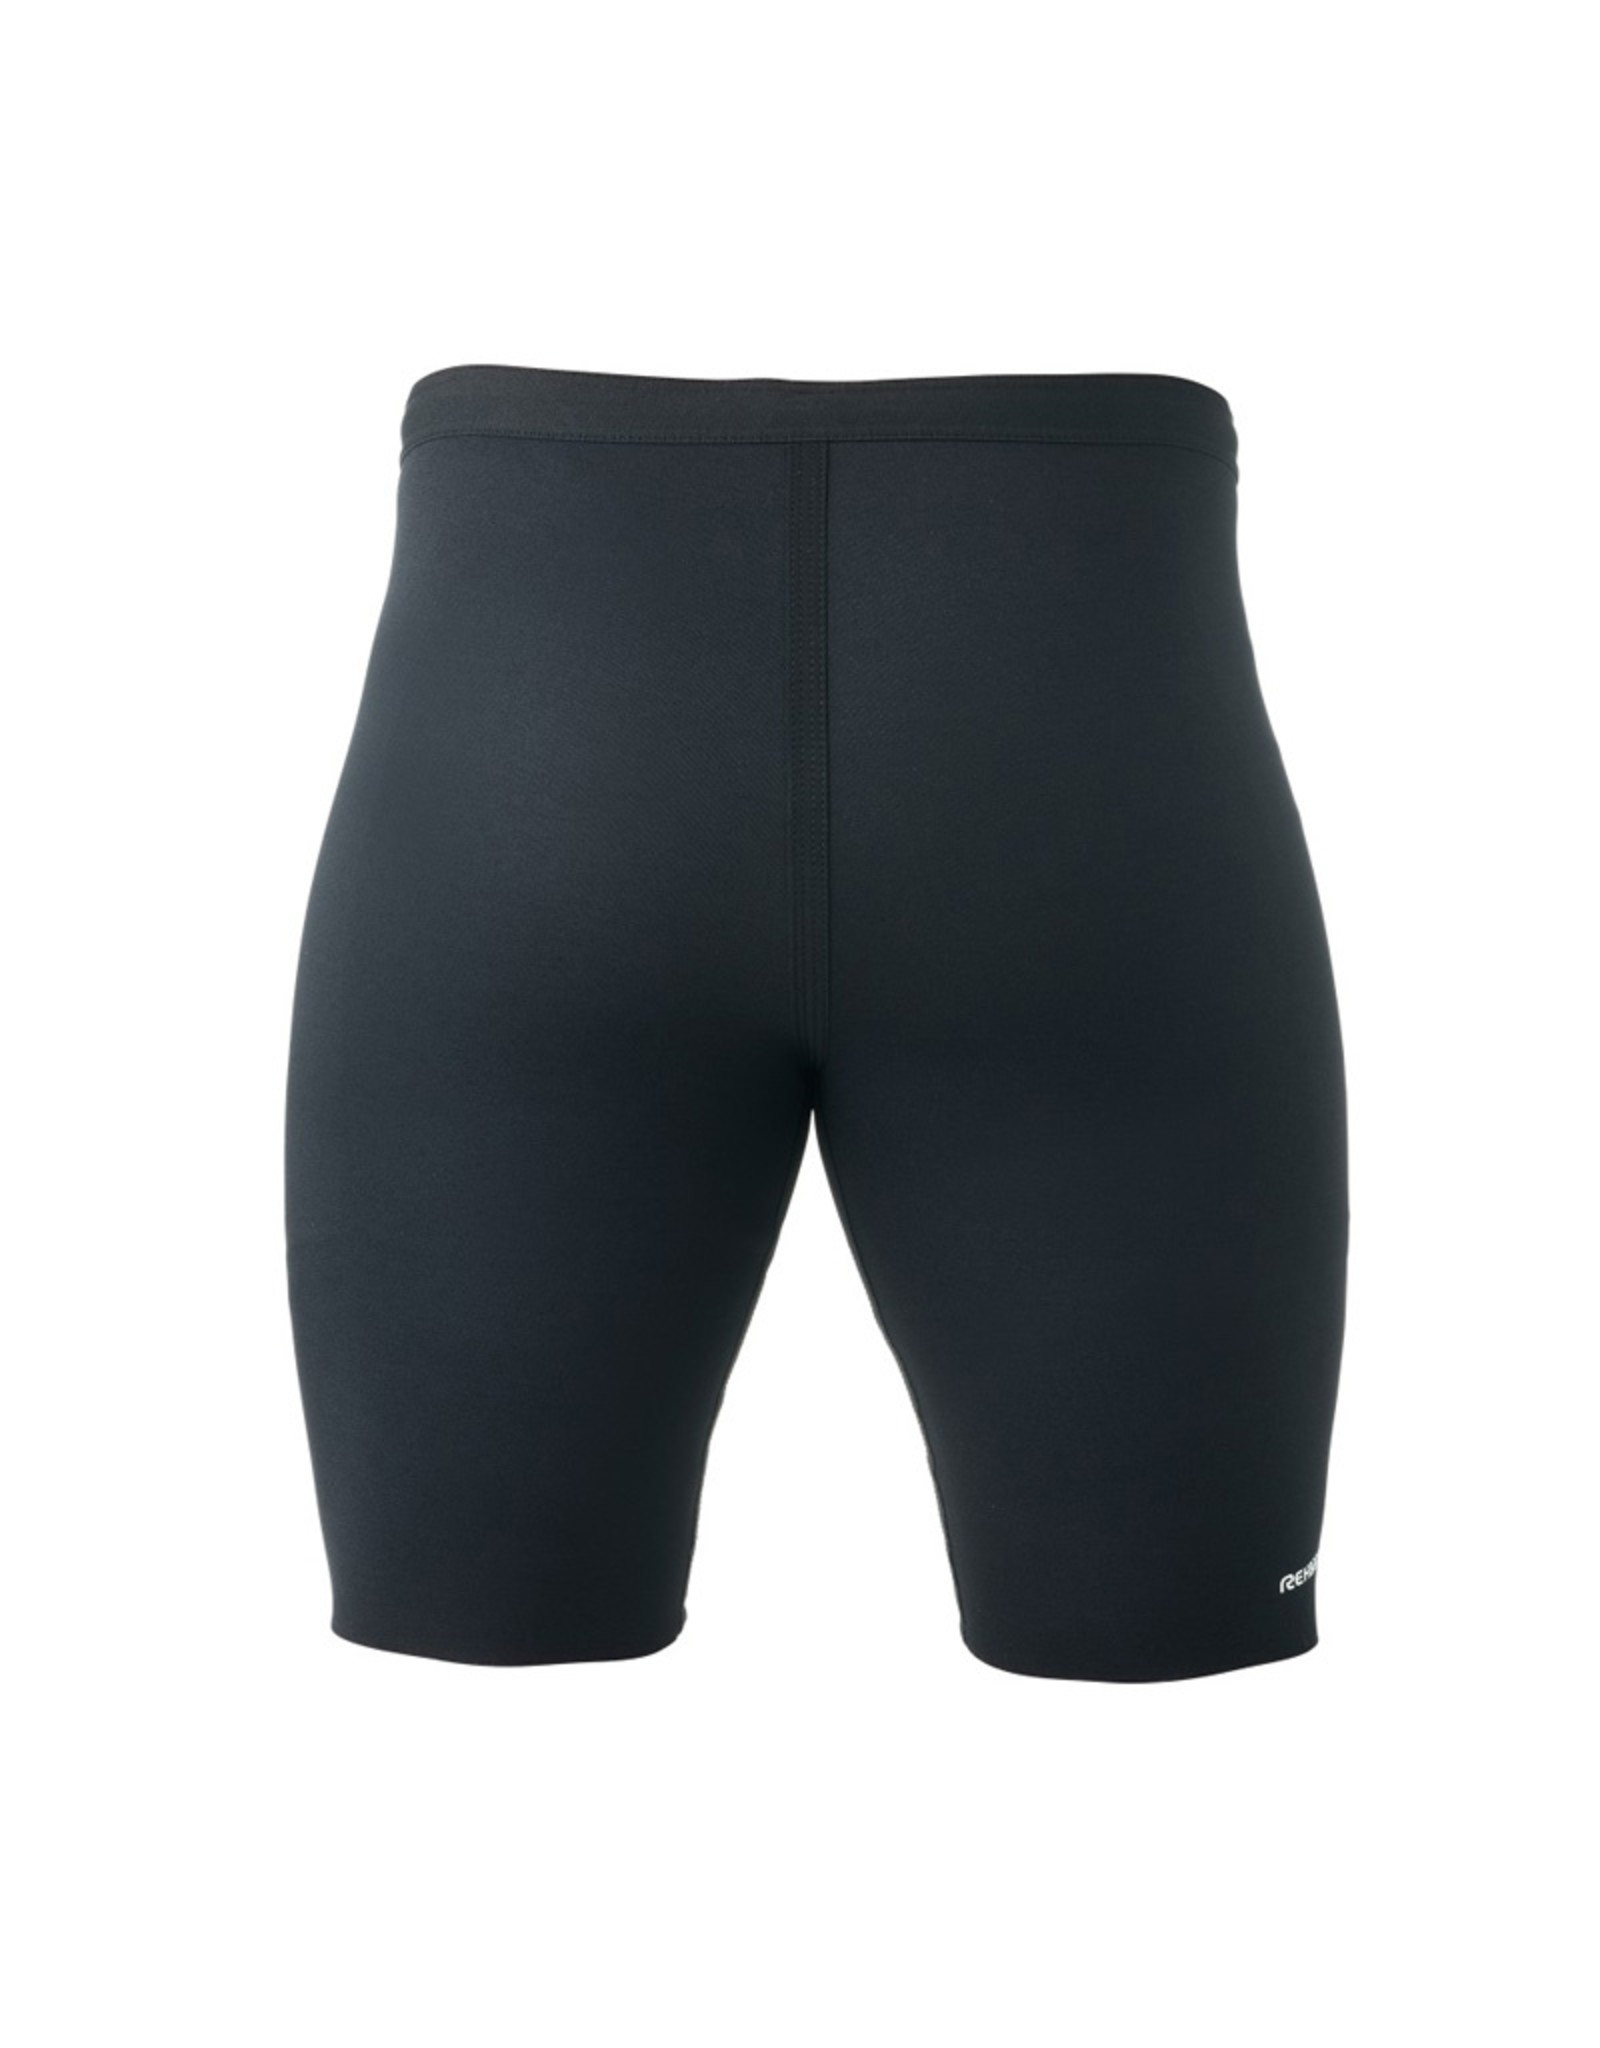 Rehband Qd Thermal Shorts 1.5Mm - Noir